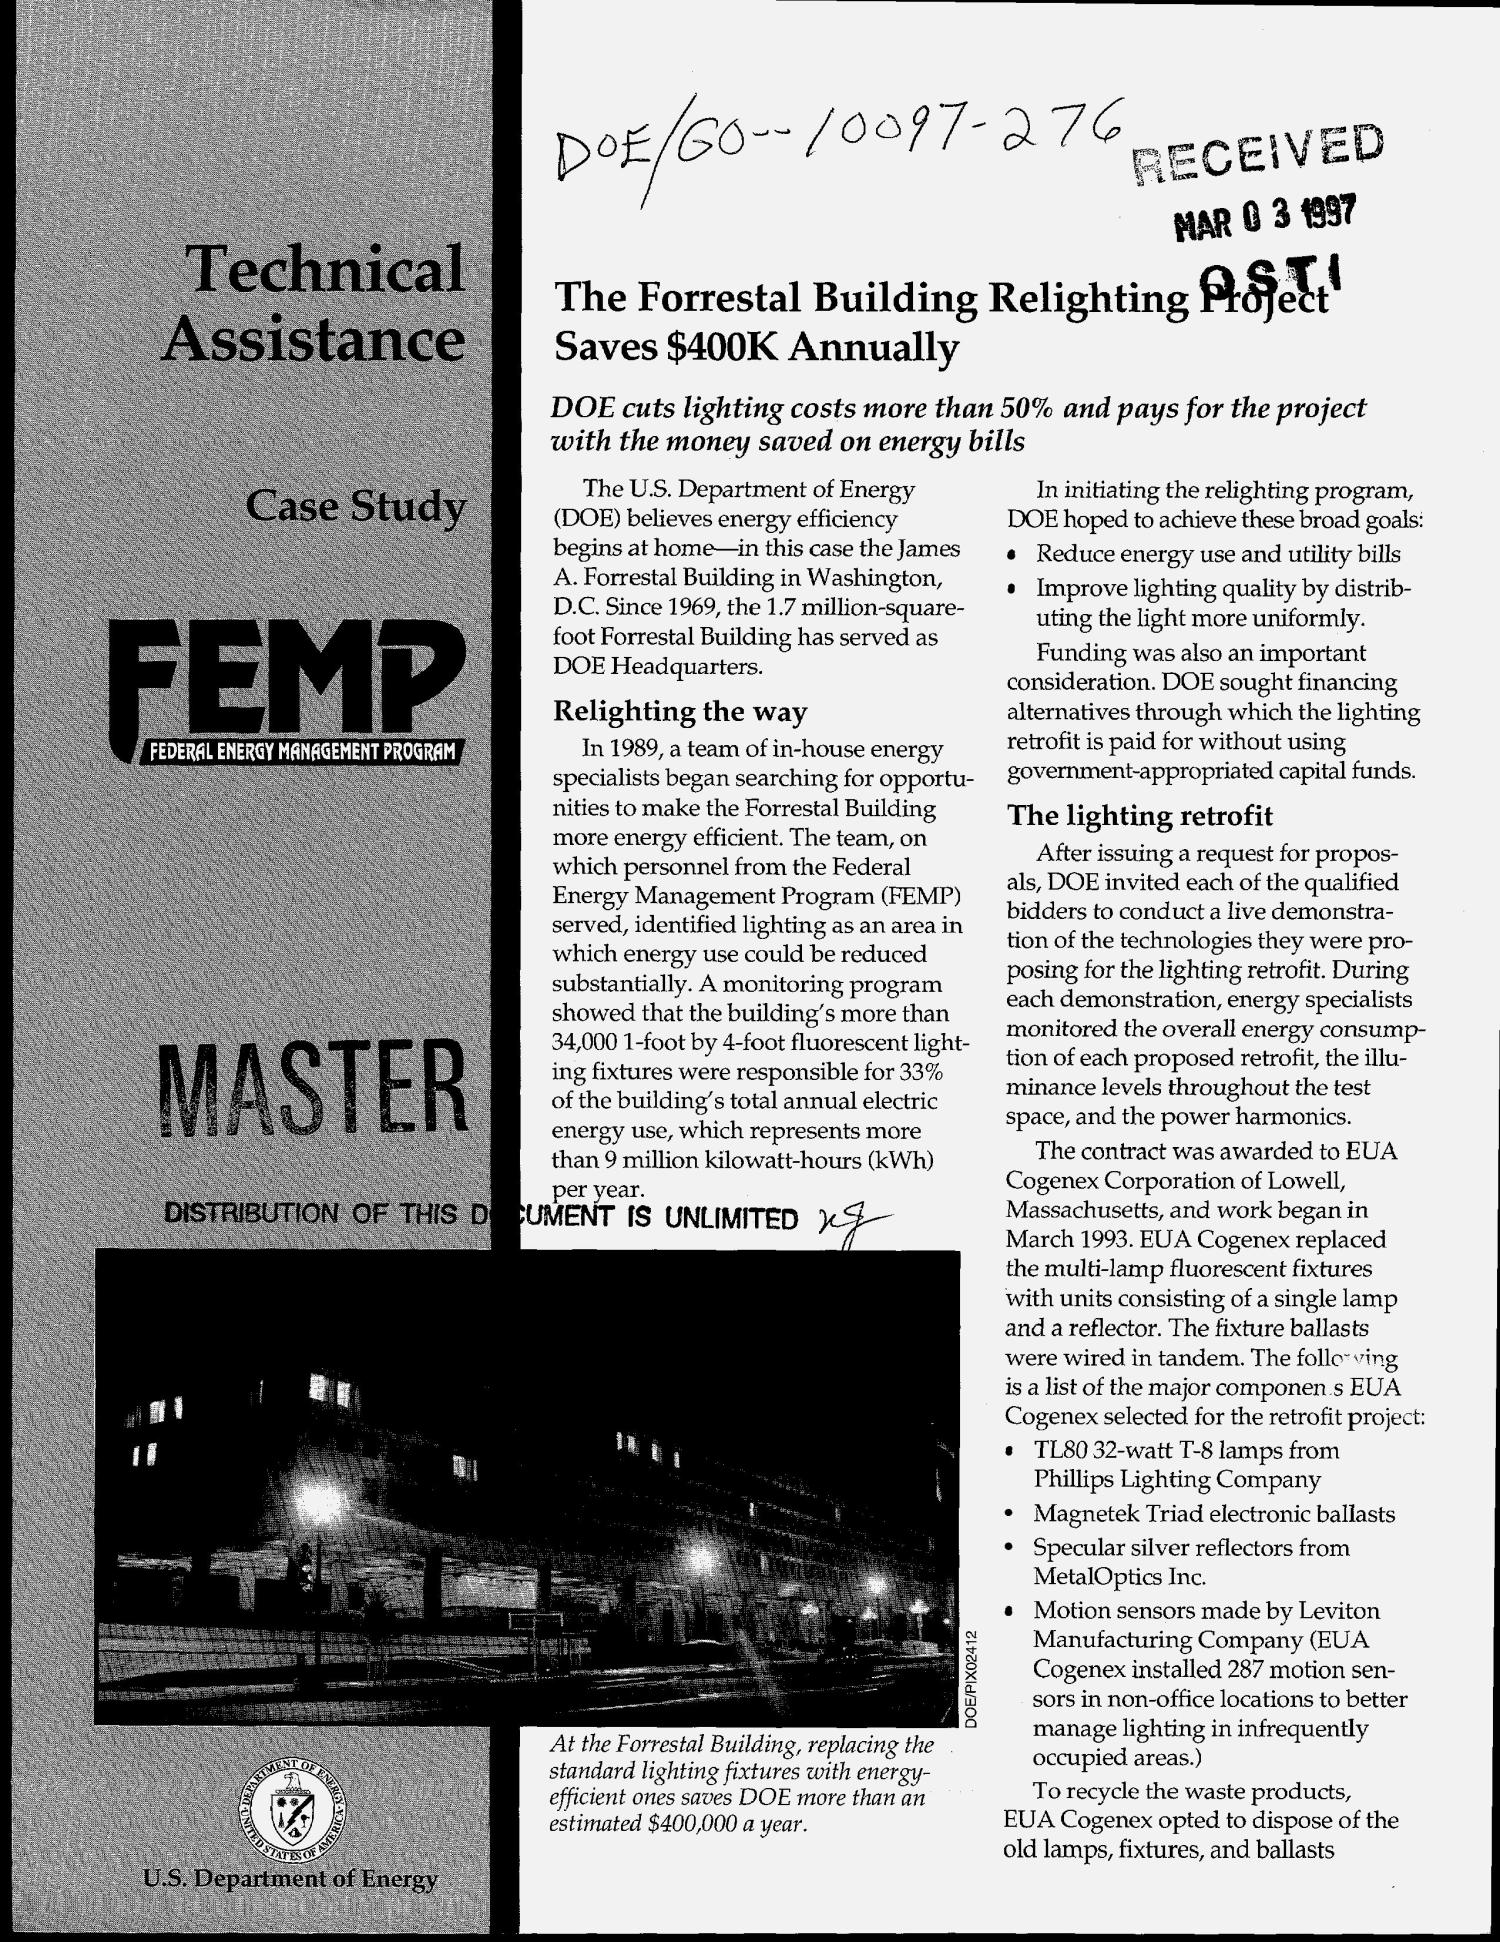 Federal Energy Management Program technical assistance case study: The Forrestal Building relighting project saves $400K annually                                                                                                      [Sequence #]: 1 of 6